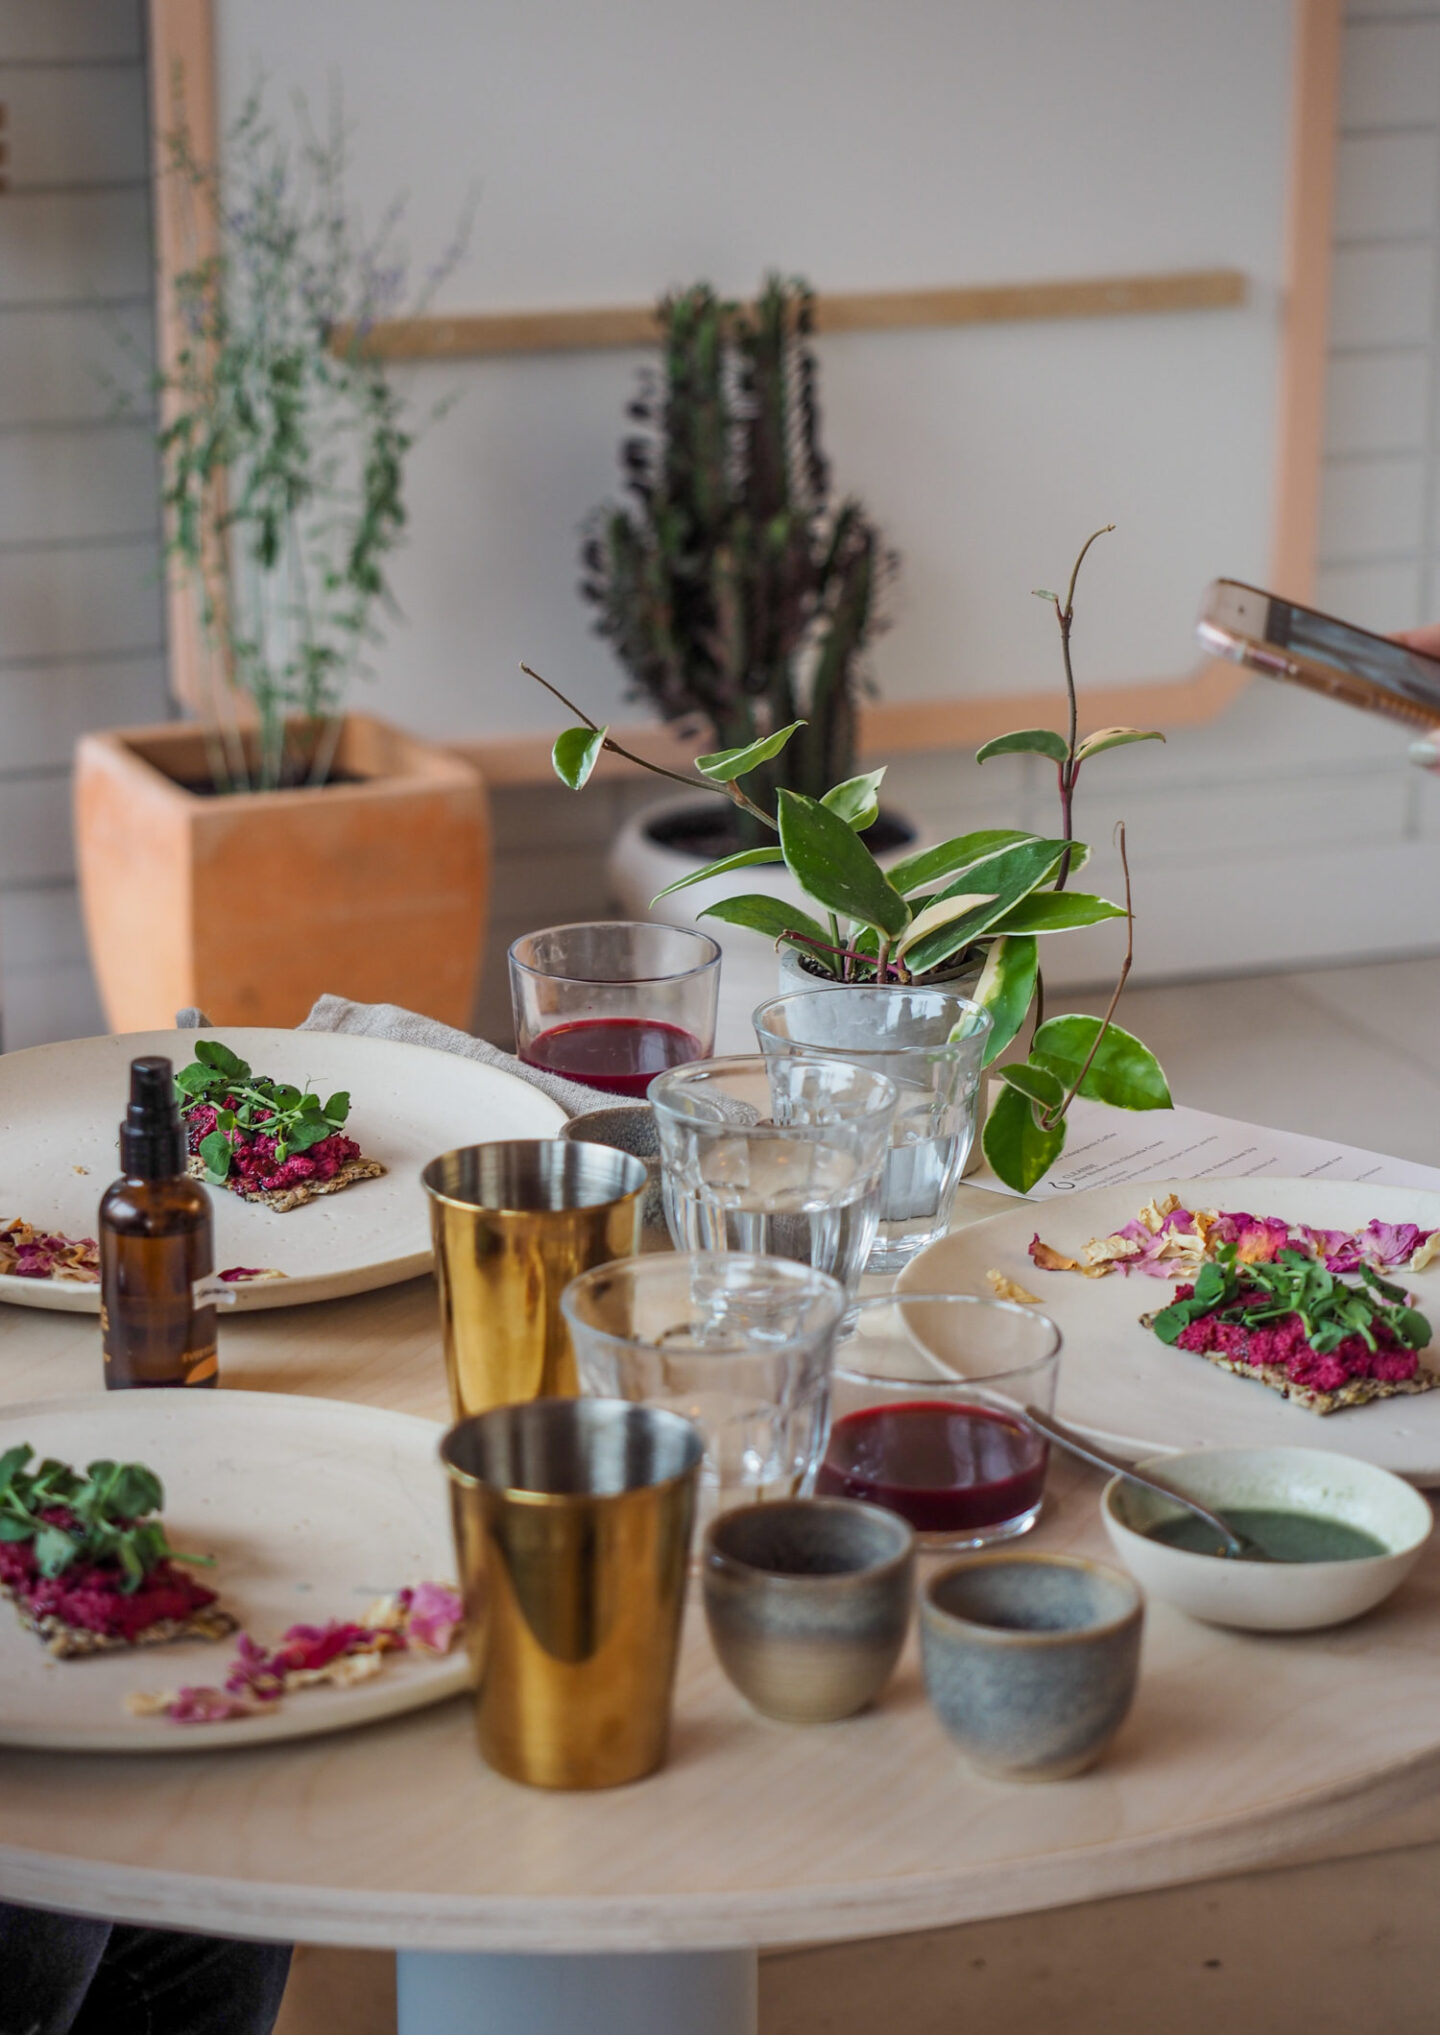 Vancouver Wellness: Nectar Juicery Vancouver Group Breakfasts